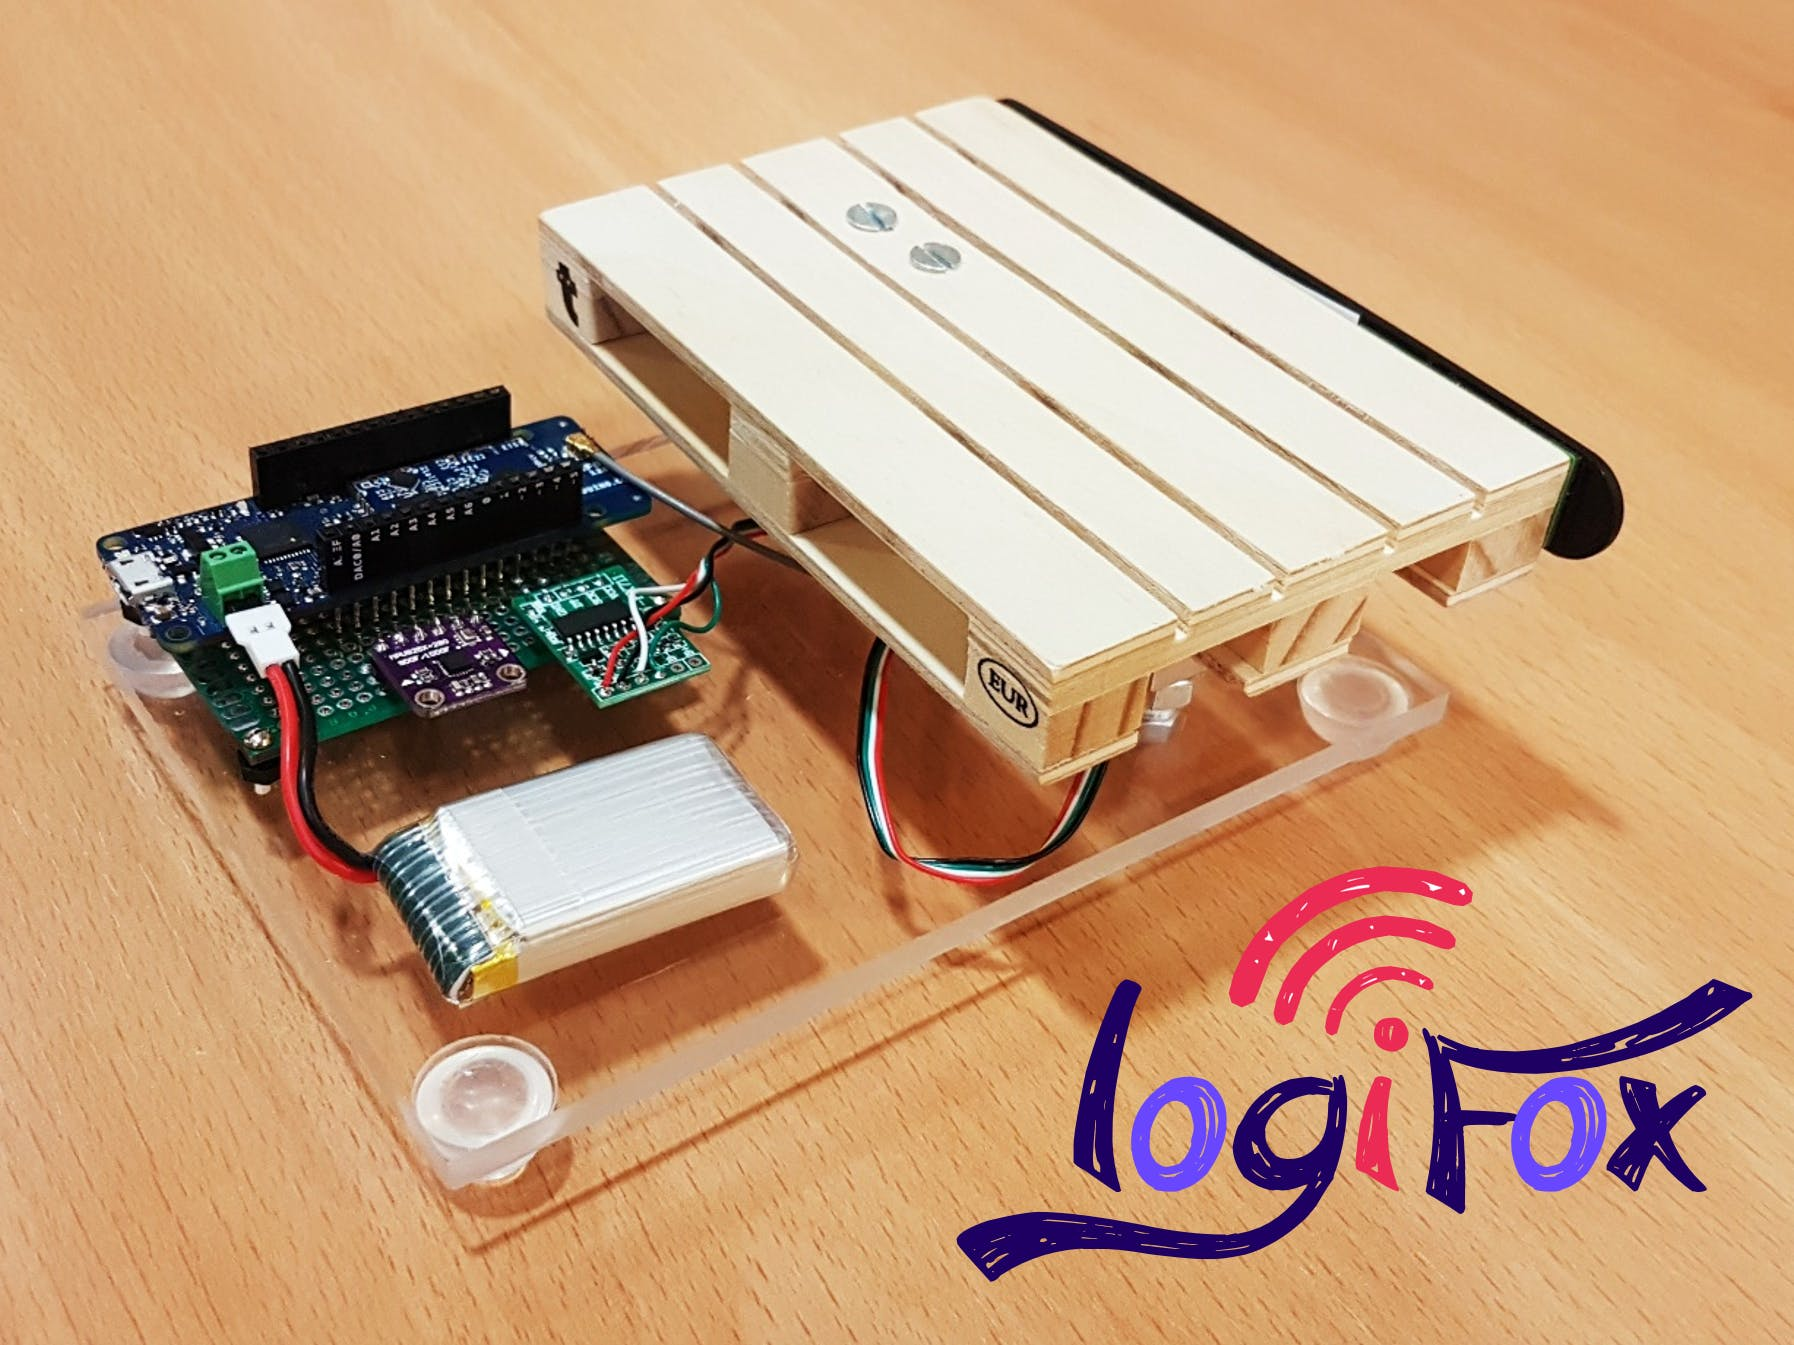 Logifox: The End of E-Waste Has Arrived